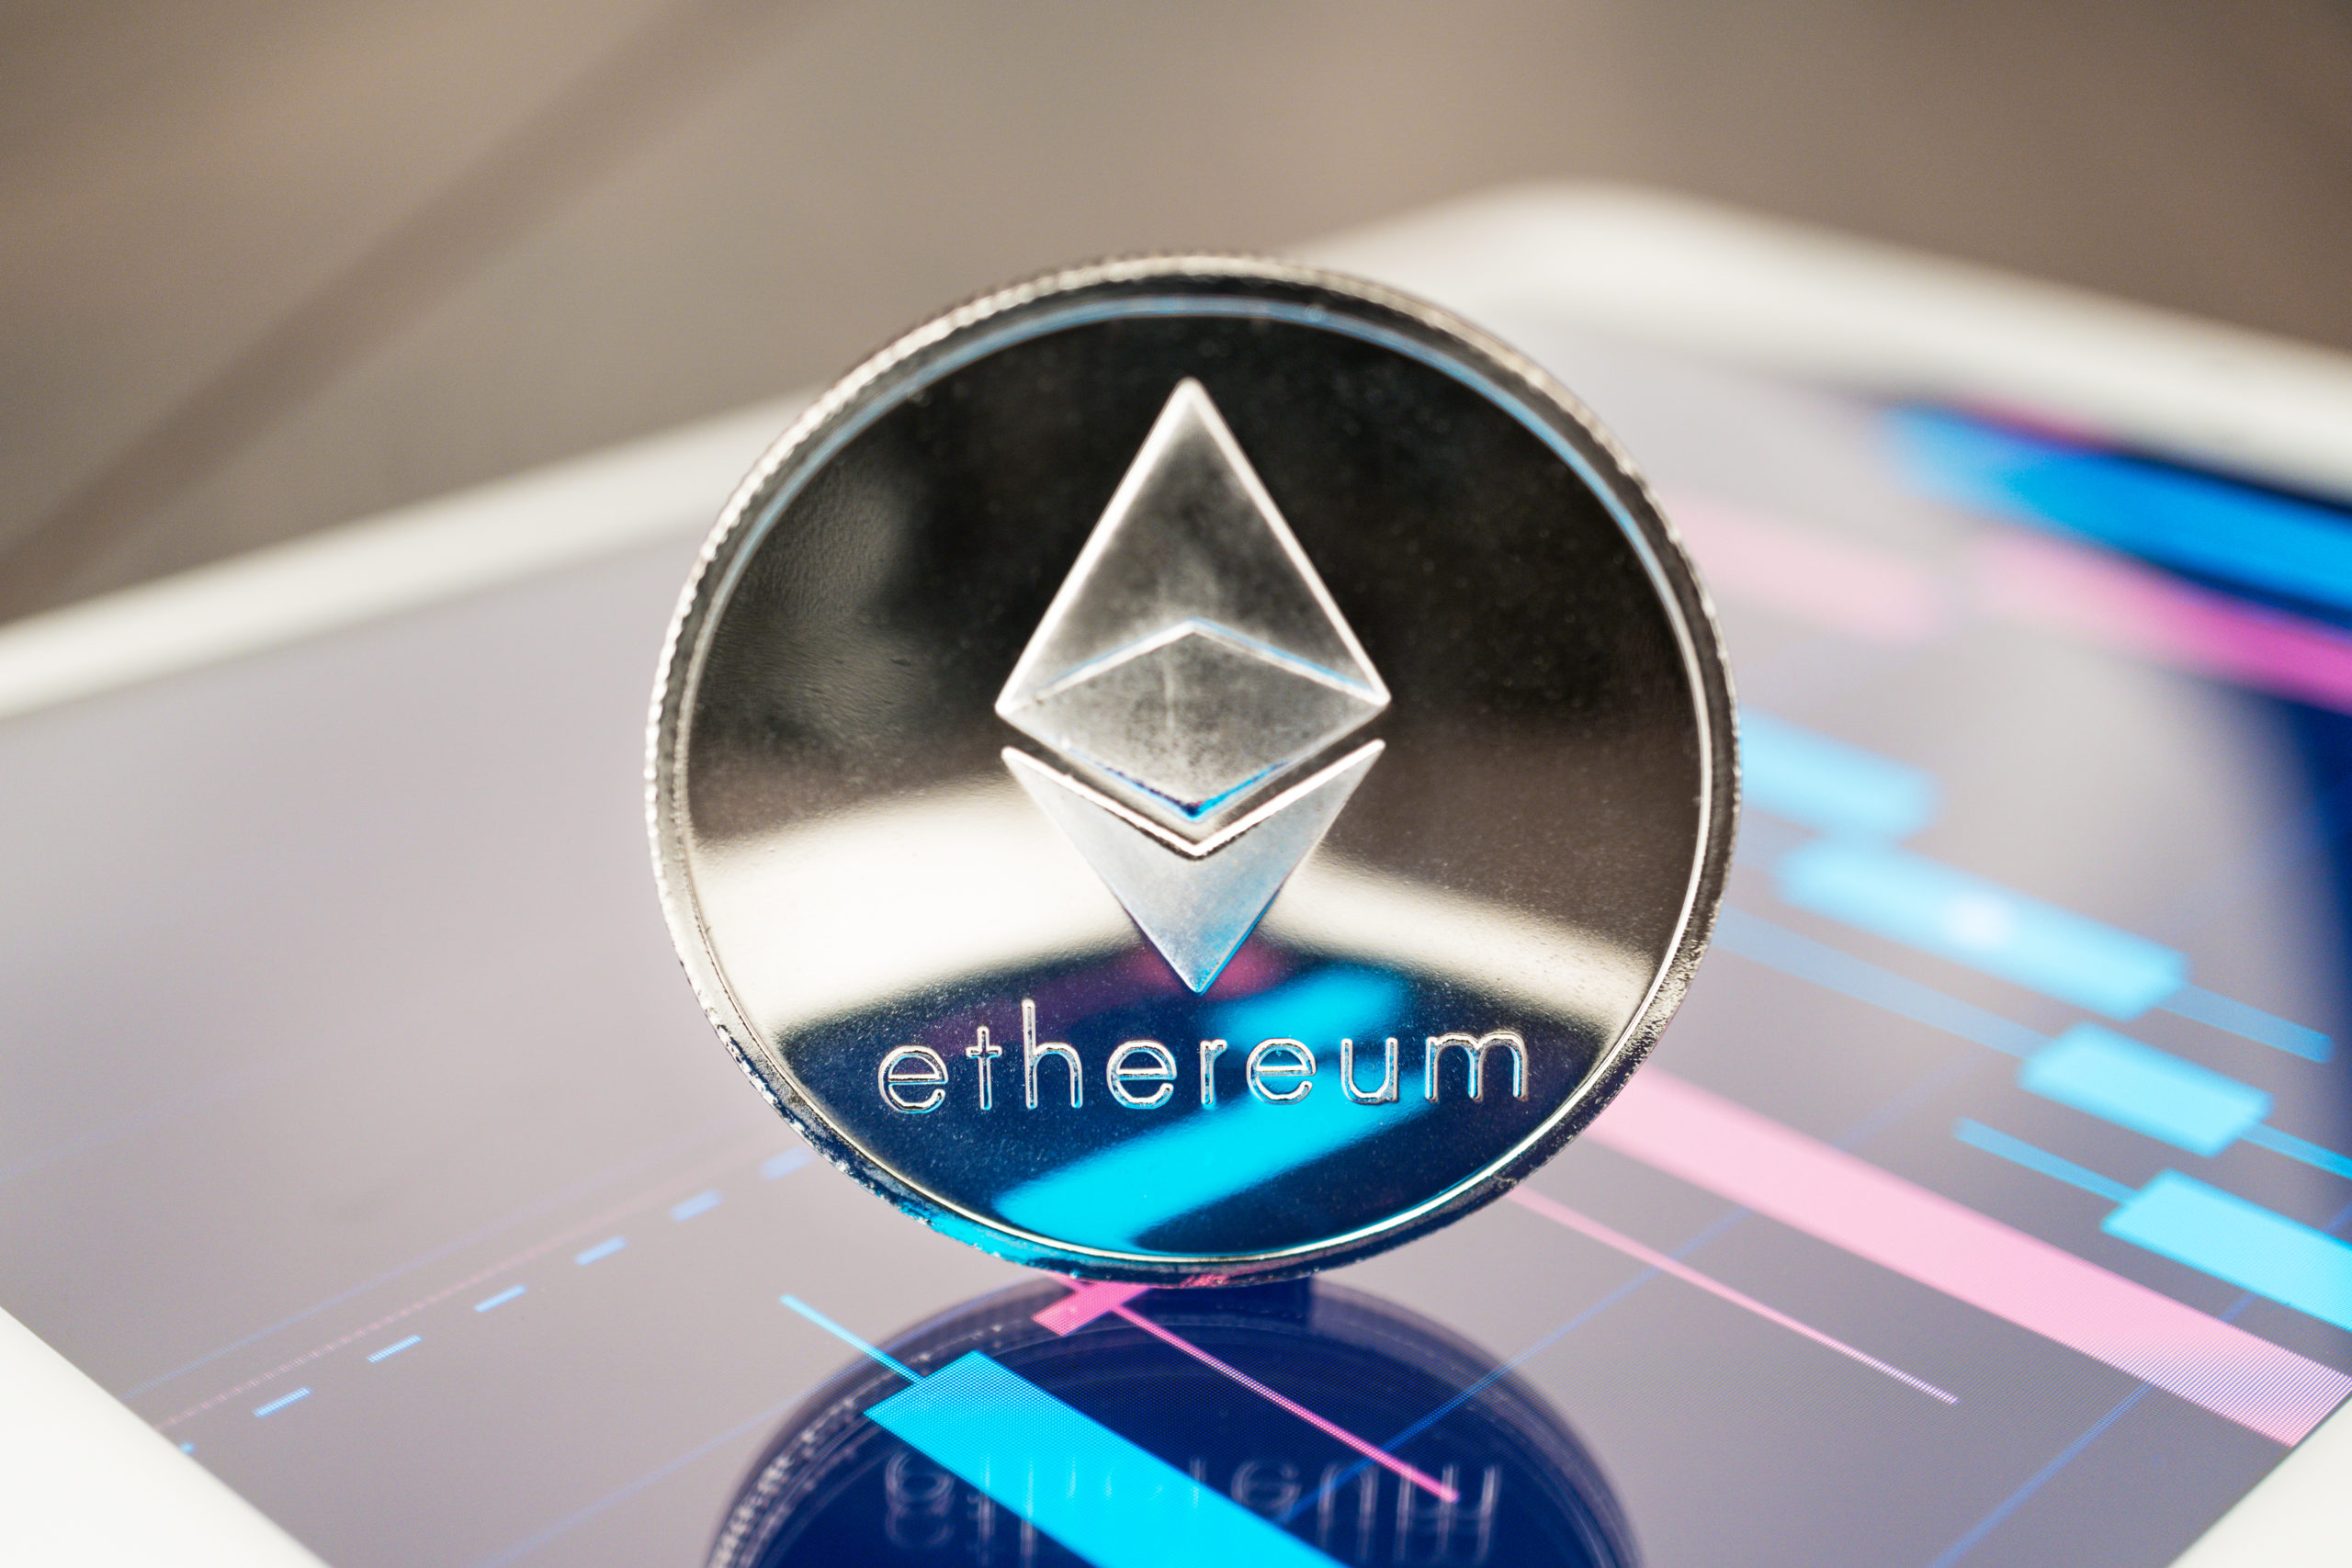 close-up photo of ether cryptocurrency physical coin on the tablet computer showing stock market charts.